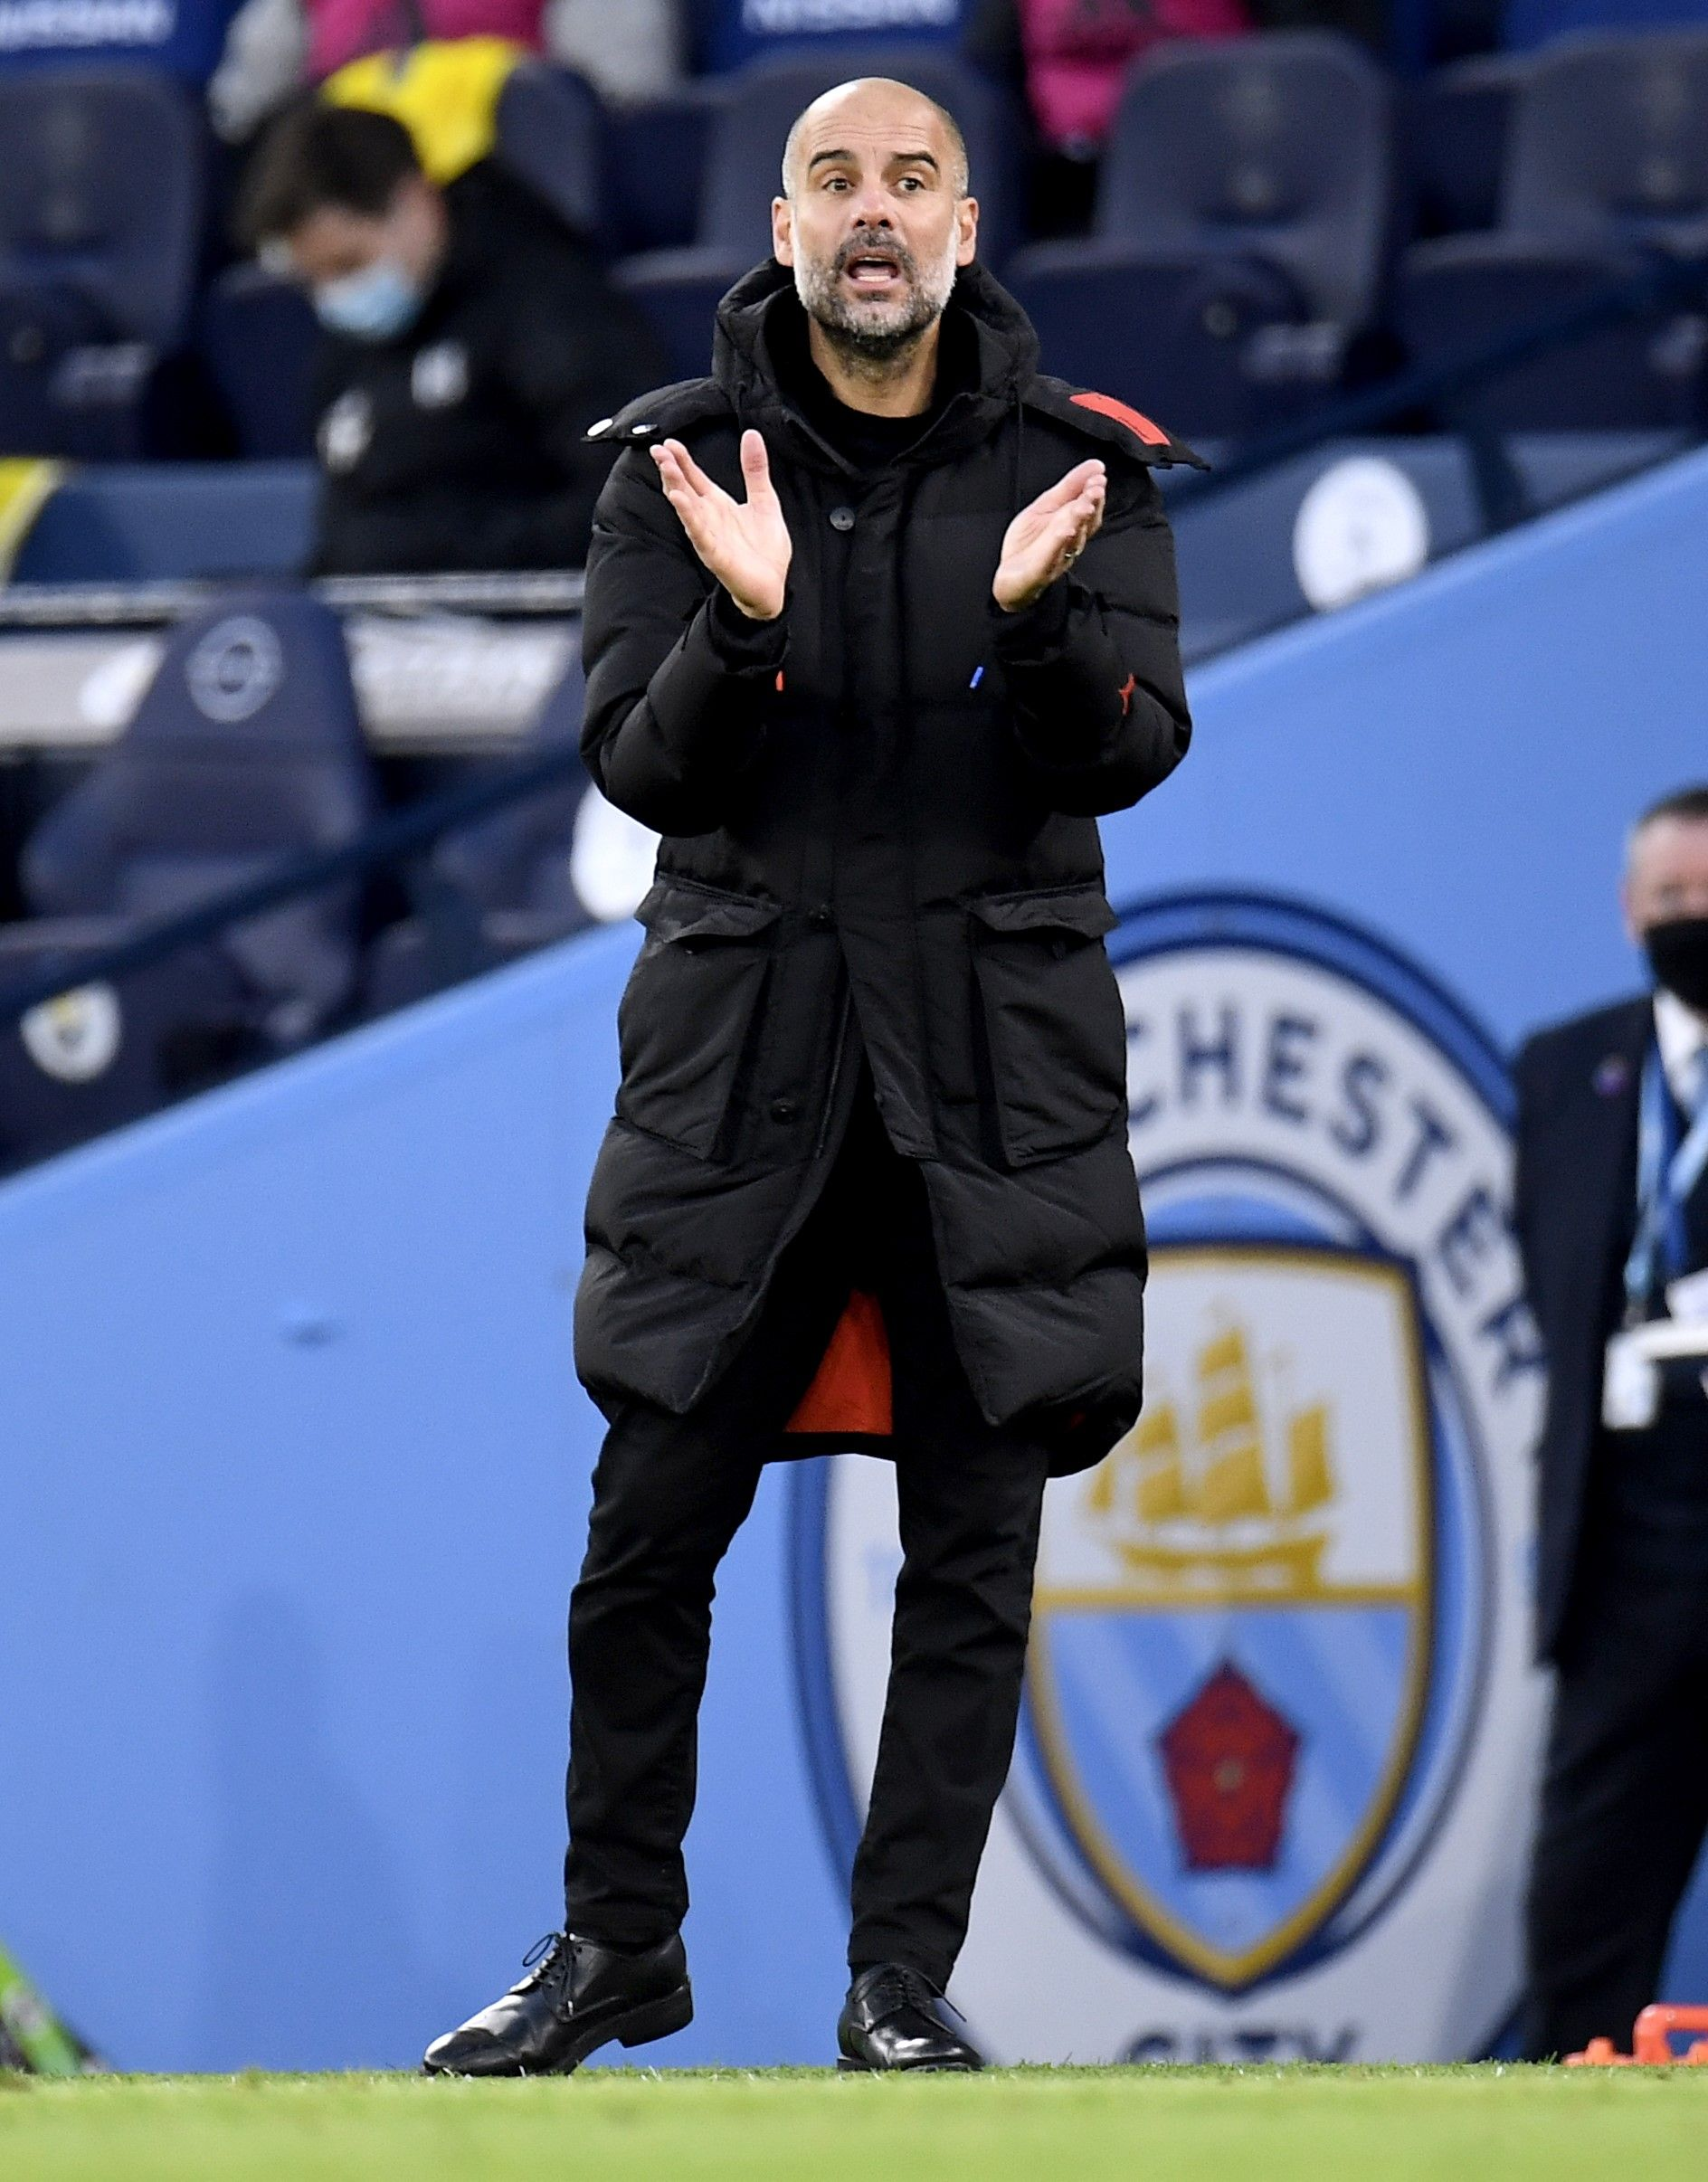 Pep Guardiola, entrenador del Manchester City | Europa Press